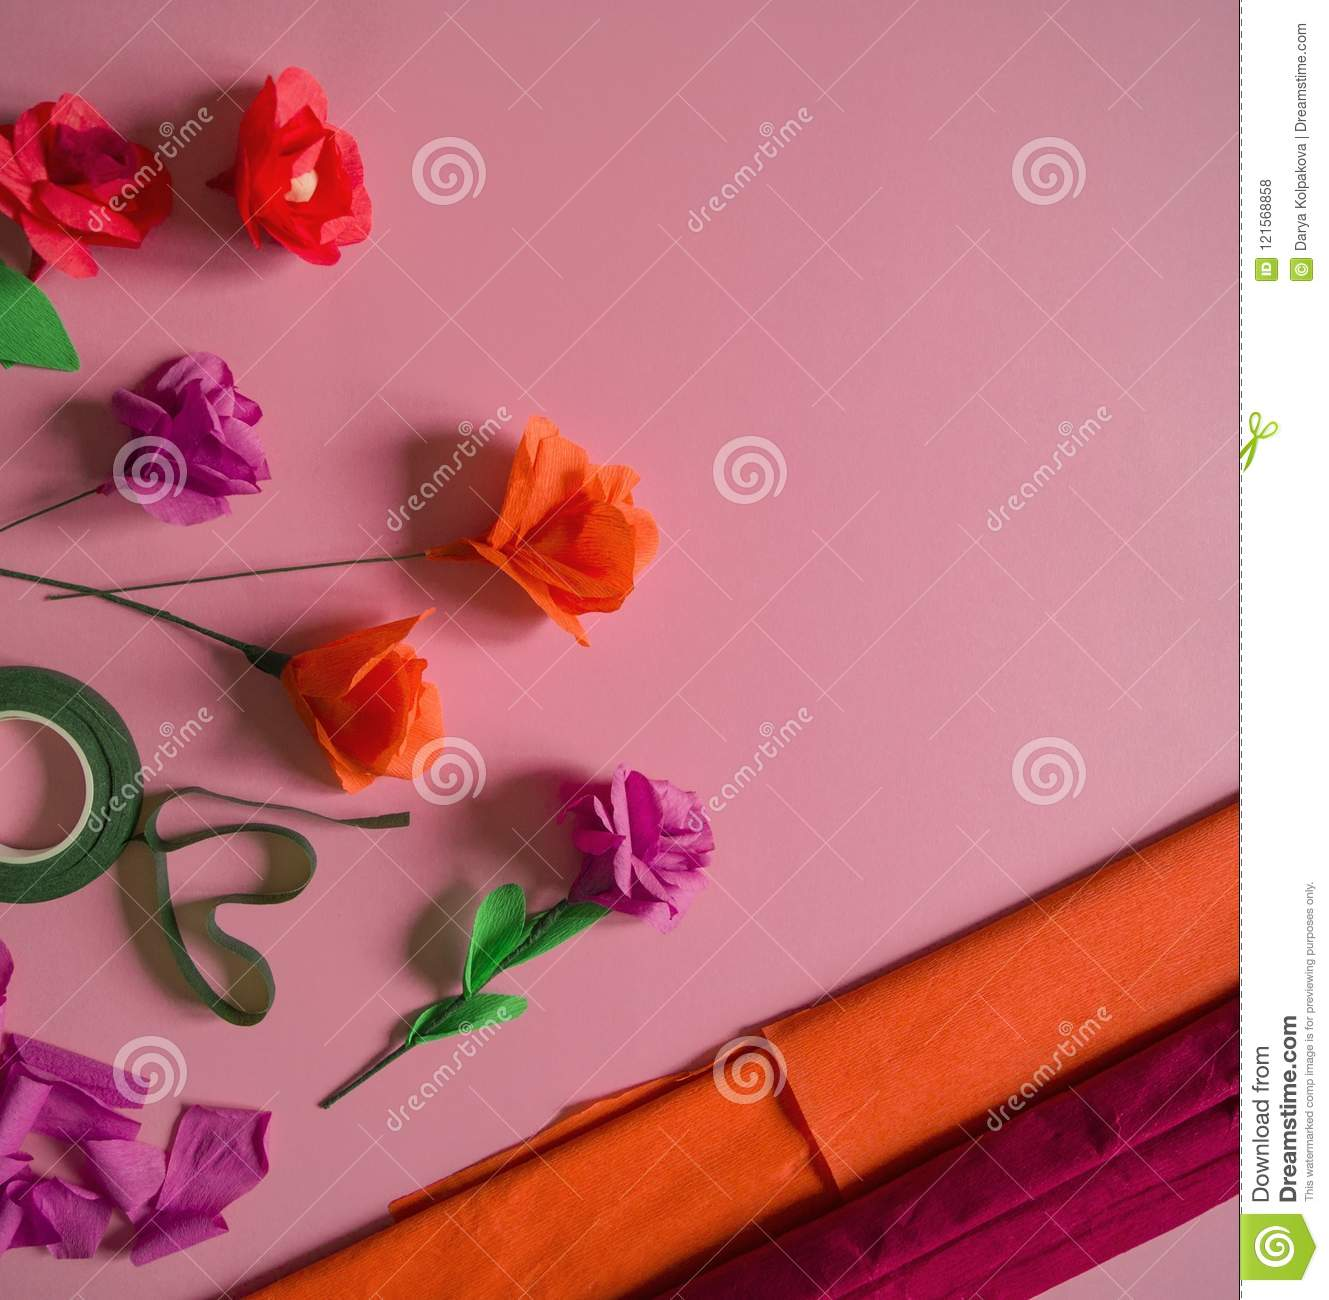 Materials To Create A Flower Handmade Paper Flower Crepe Paper